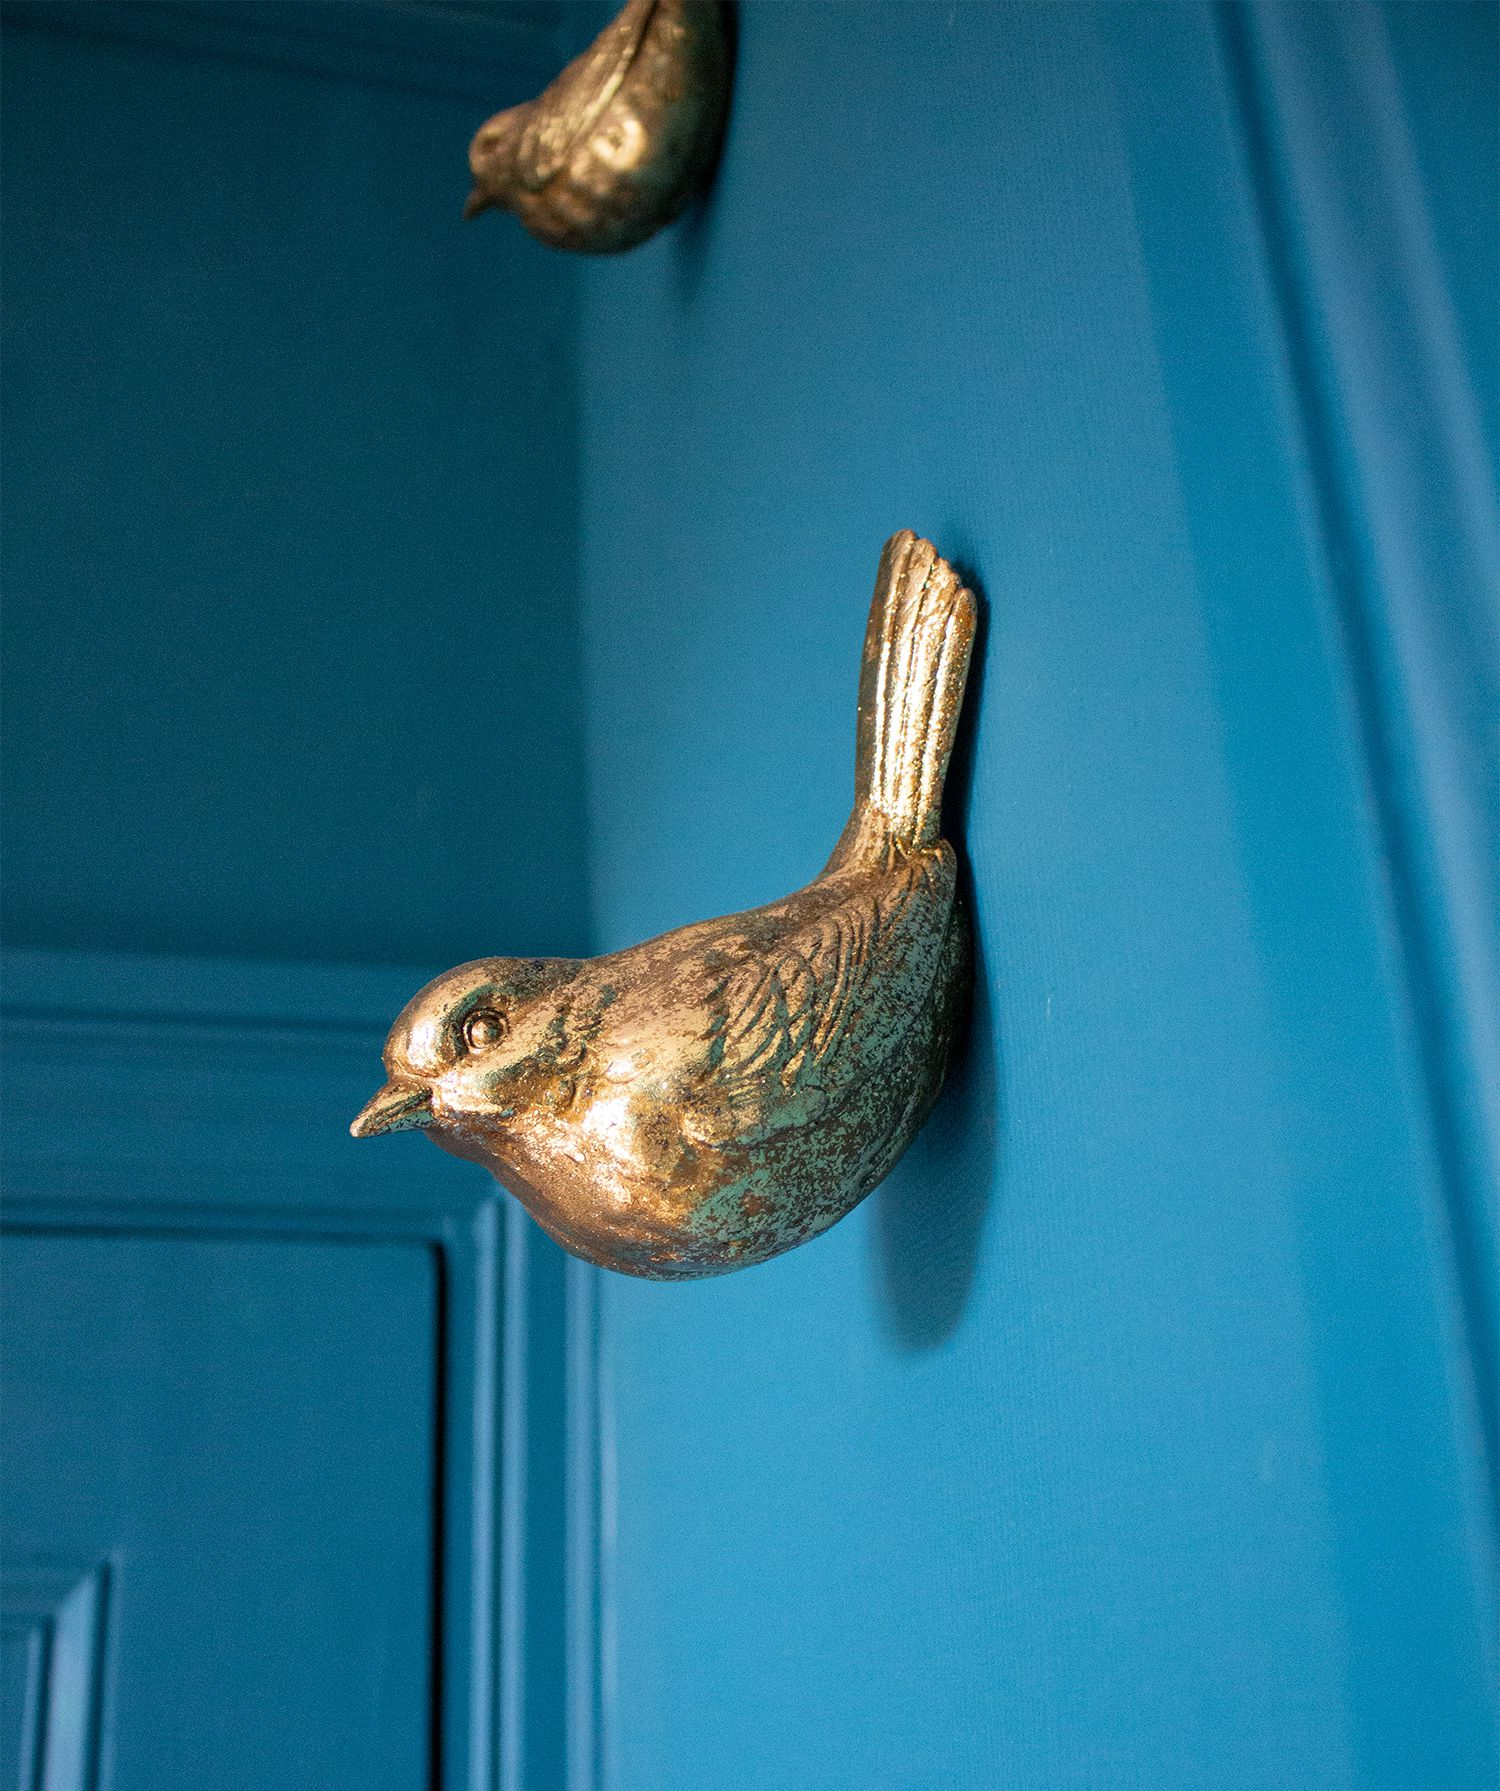 A close up photo of some brass decorative birds on the wall in the teal room.